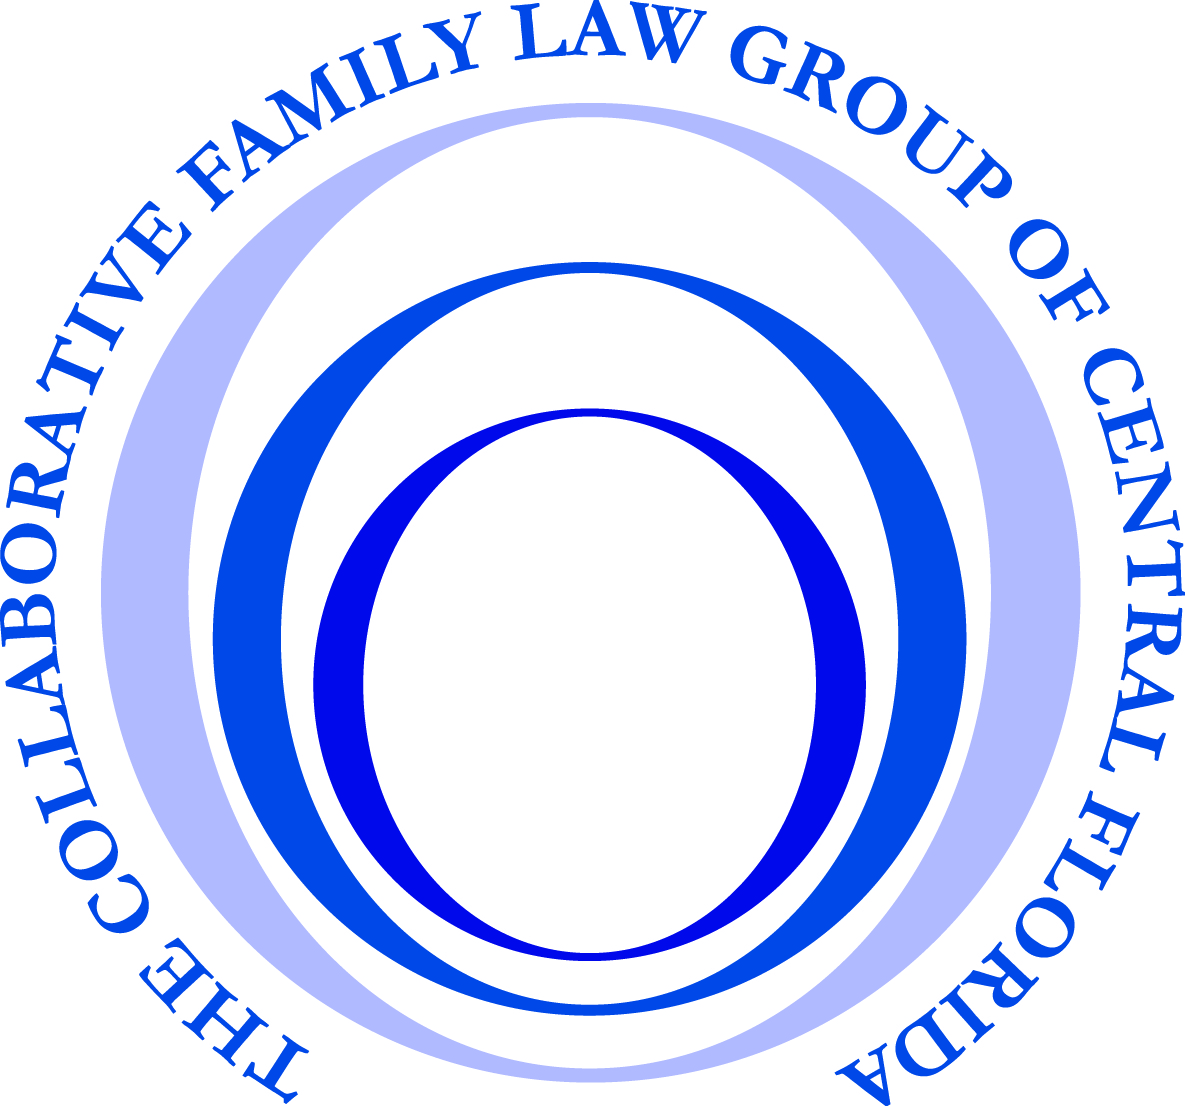 collaborative family law group of central fla